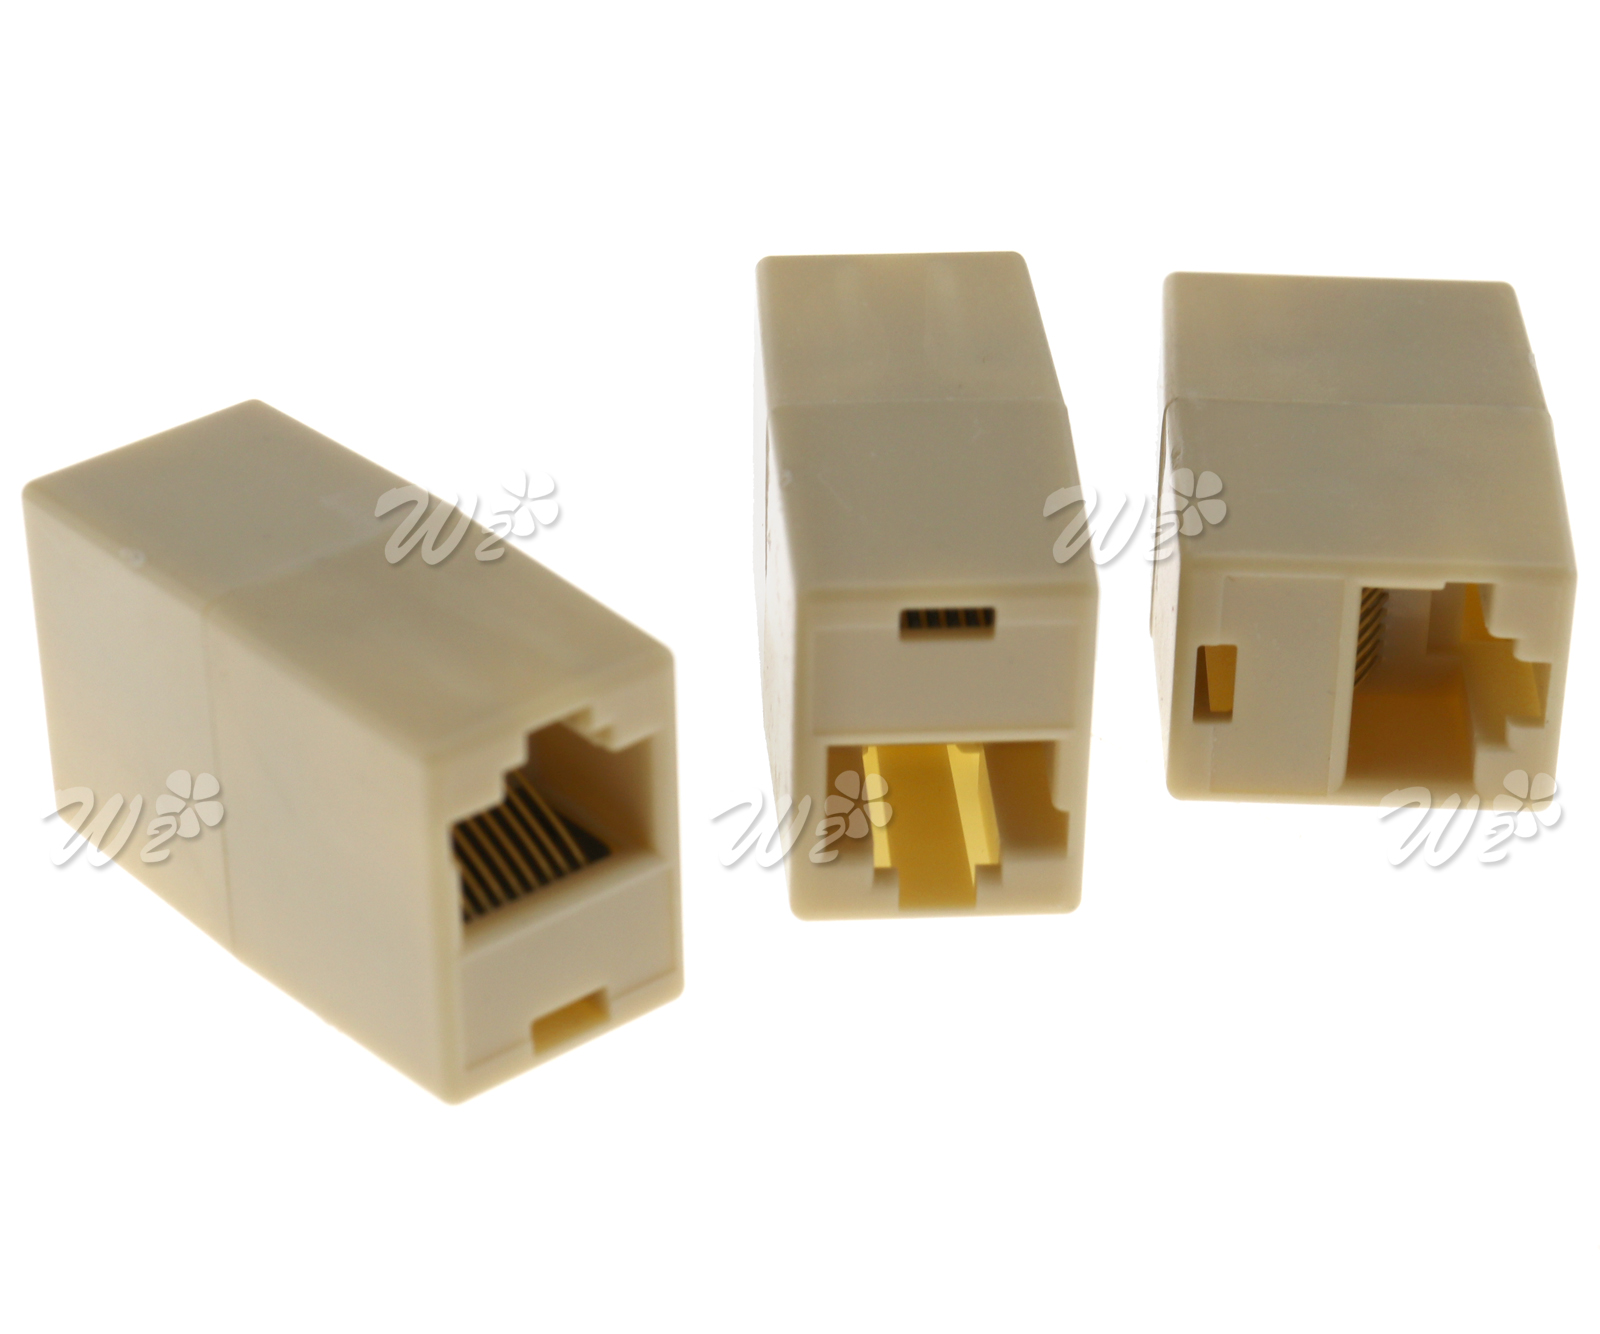 10pcs rj45 kupplung adapter patch kabel verl ngerung lan. Black Bedroom Furniture Sets. Home Design Ideas